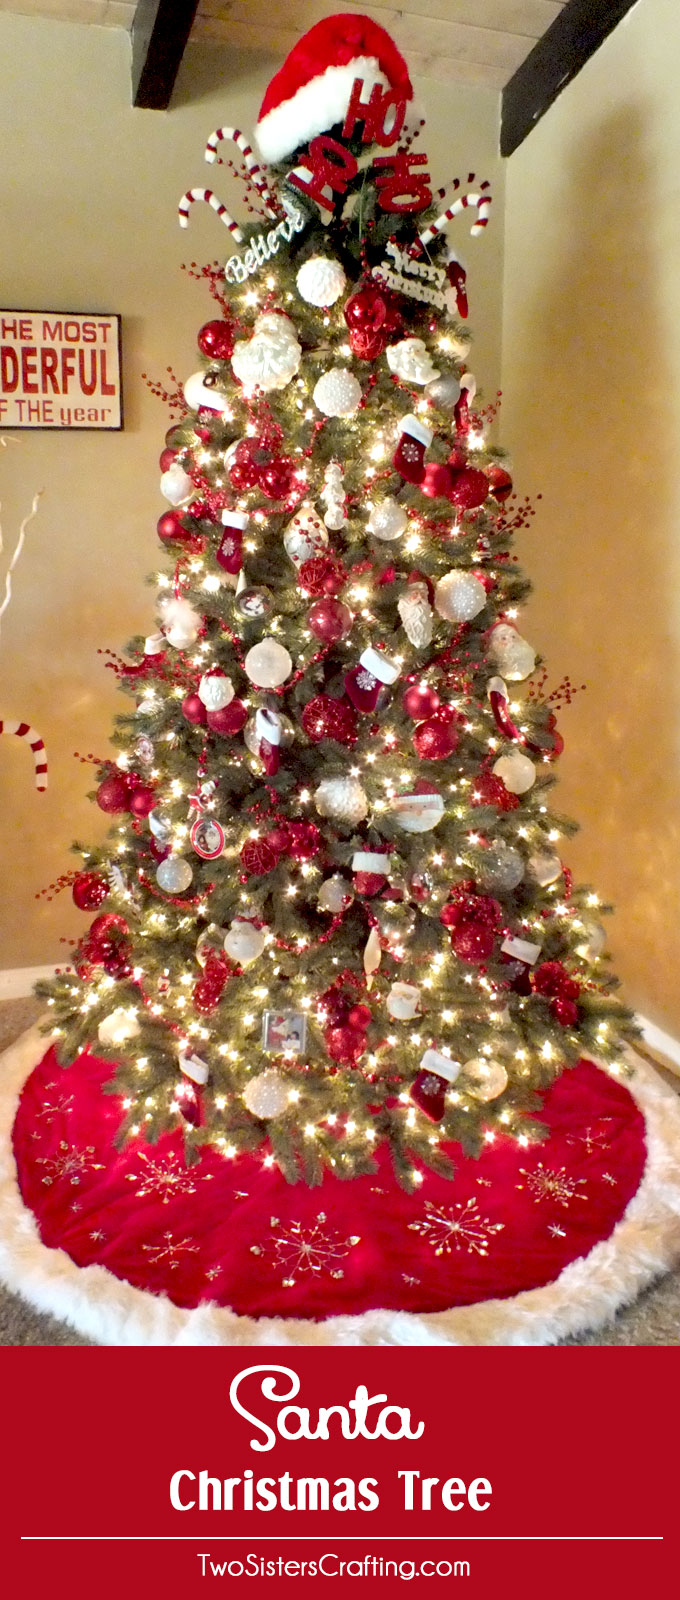 Christmas Decorations To Make Tree : Santa christmas tree two sisters crafting